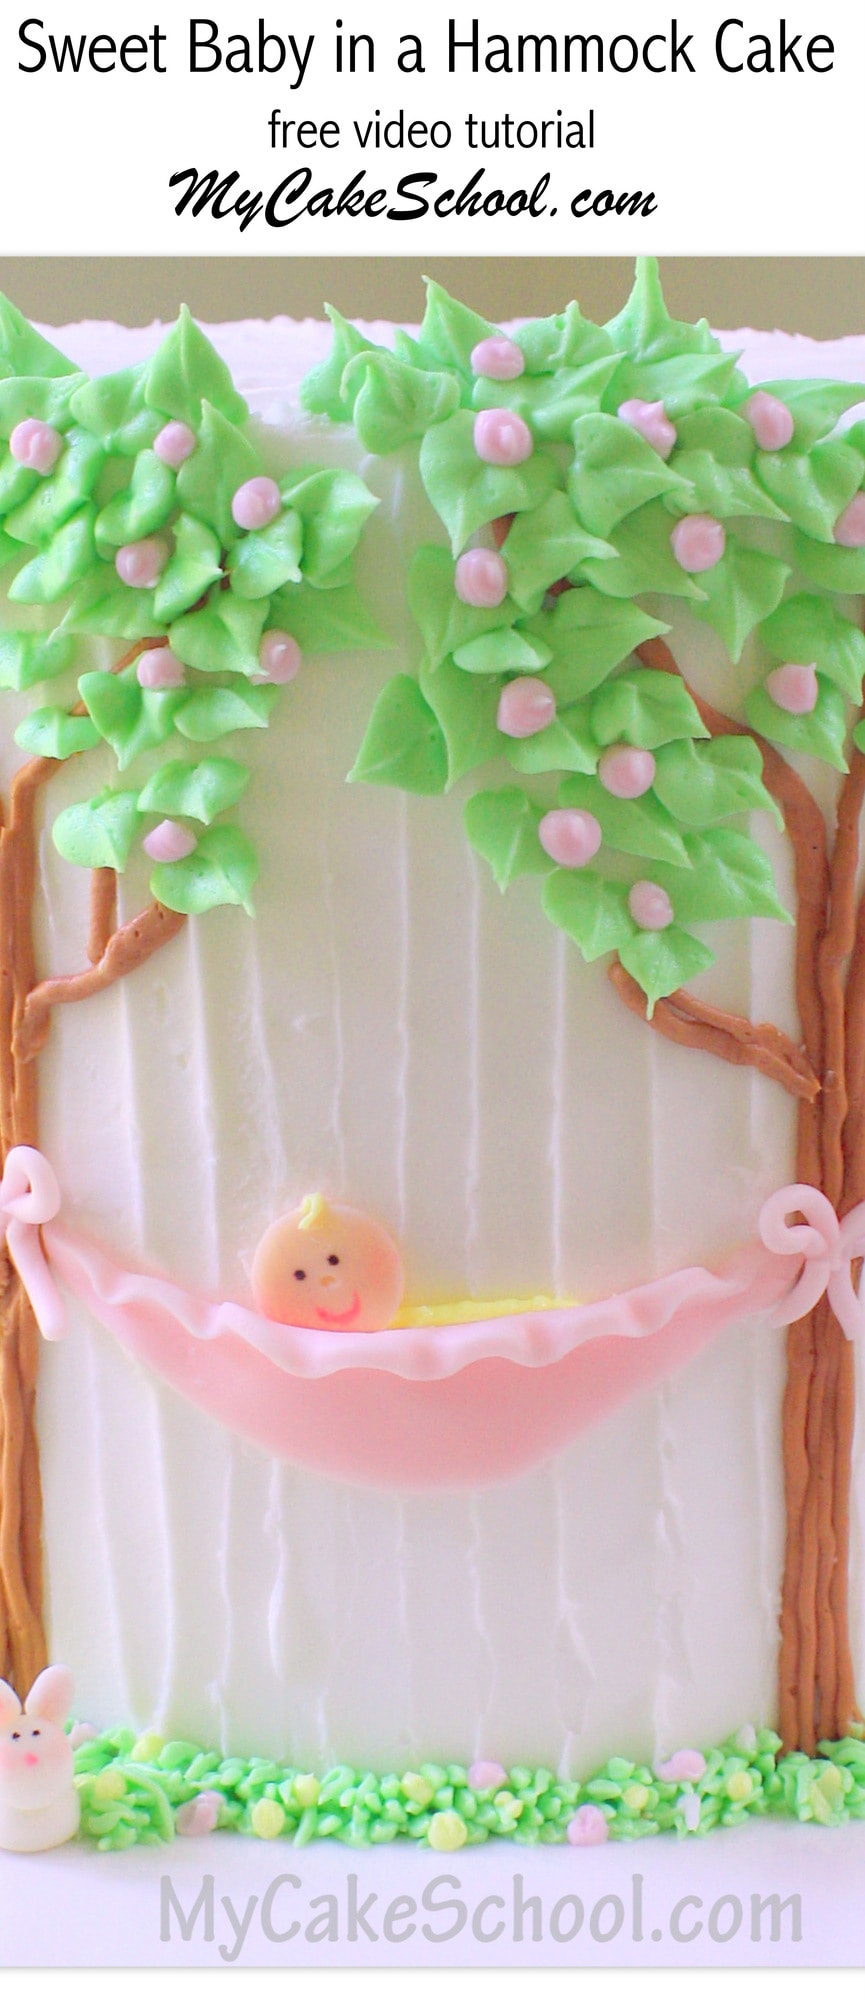 ADORABLE Baby in a Hammock Cake Design by MyCakeSchool.com! This Free Cake Decorating Video is Perfect for Baby Showers! My Cake School Online Cake Tutorials, Cake Videos, Cake Recipes, and More!